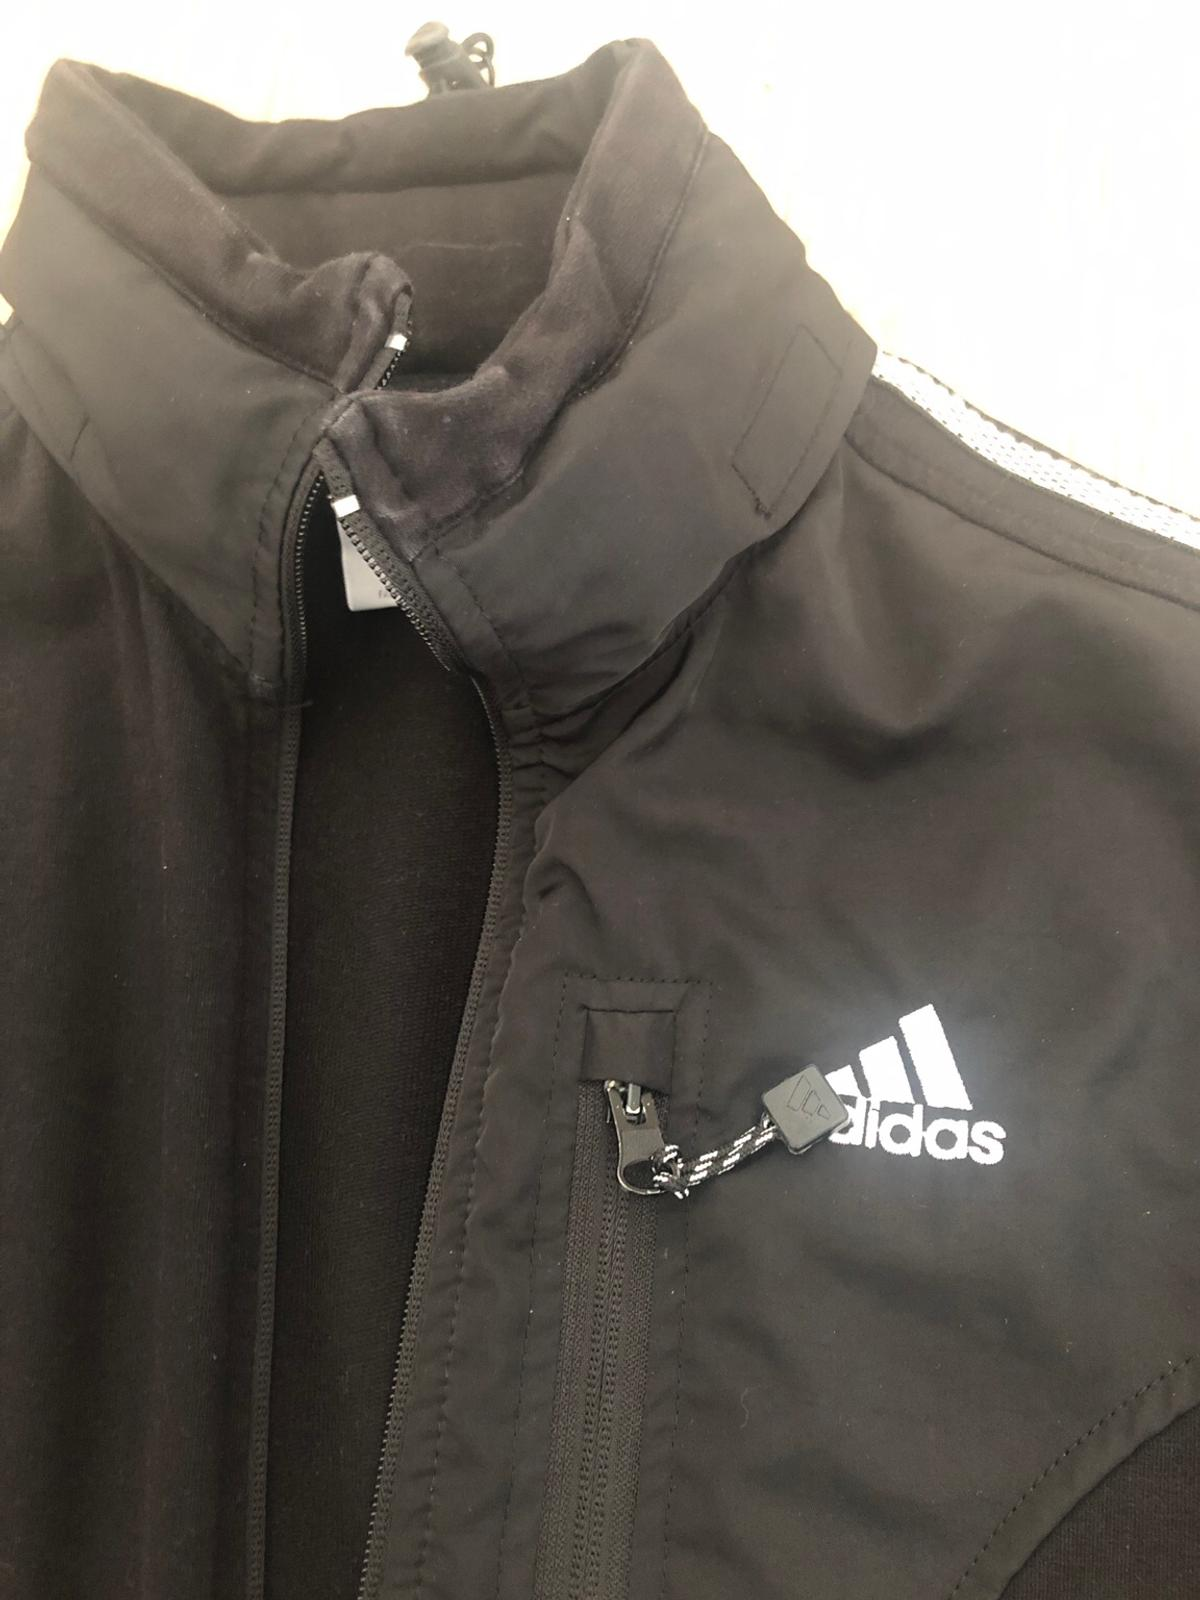 Damen Adidas Sportjacke schwarz, Gr. S in 36119 Neuhof for